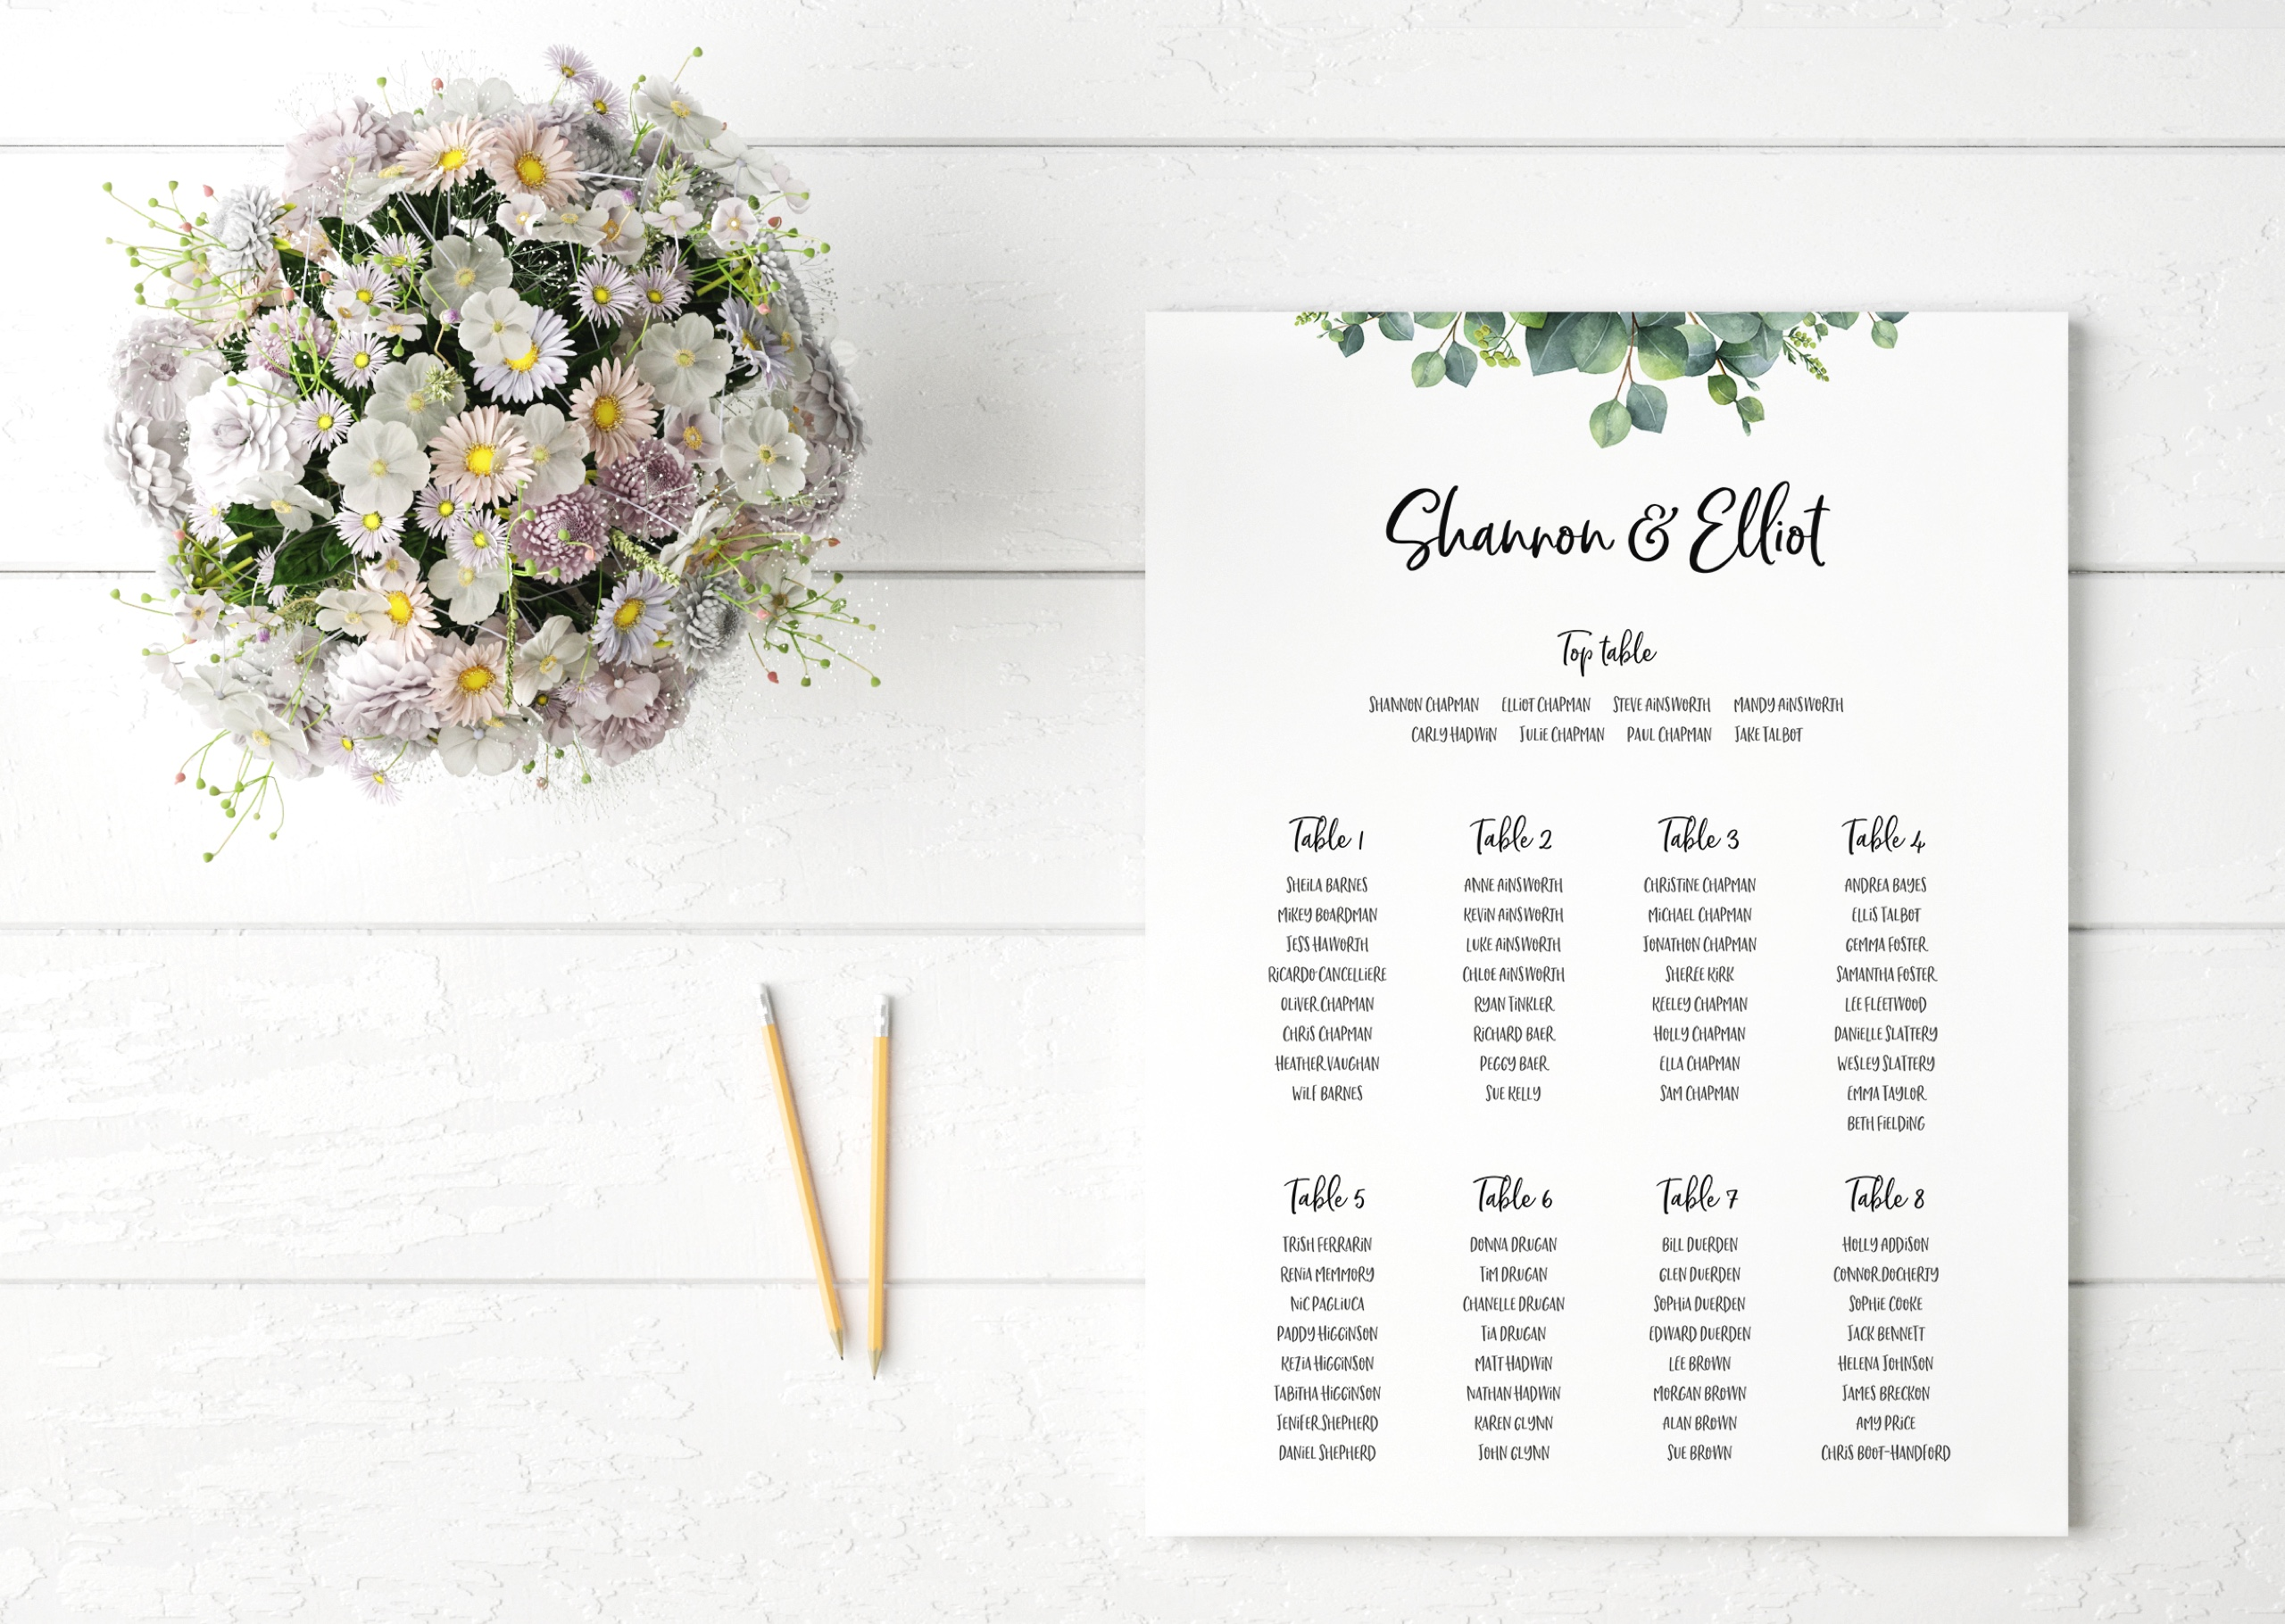 Bespoke wedding table plan design for Shannon and Elliot